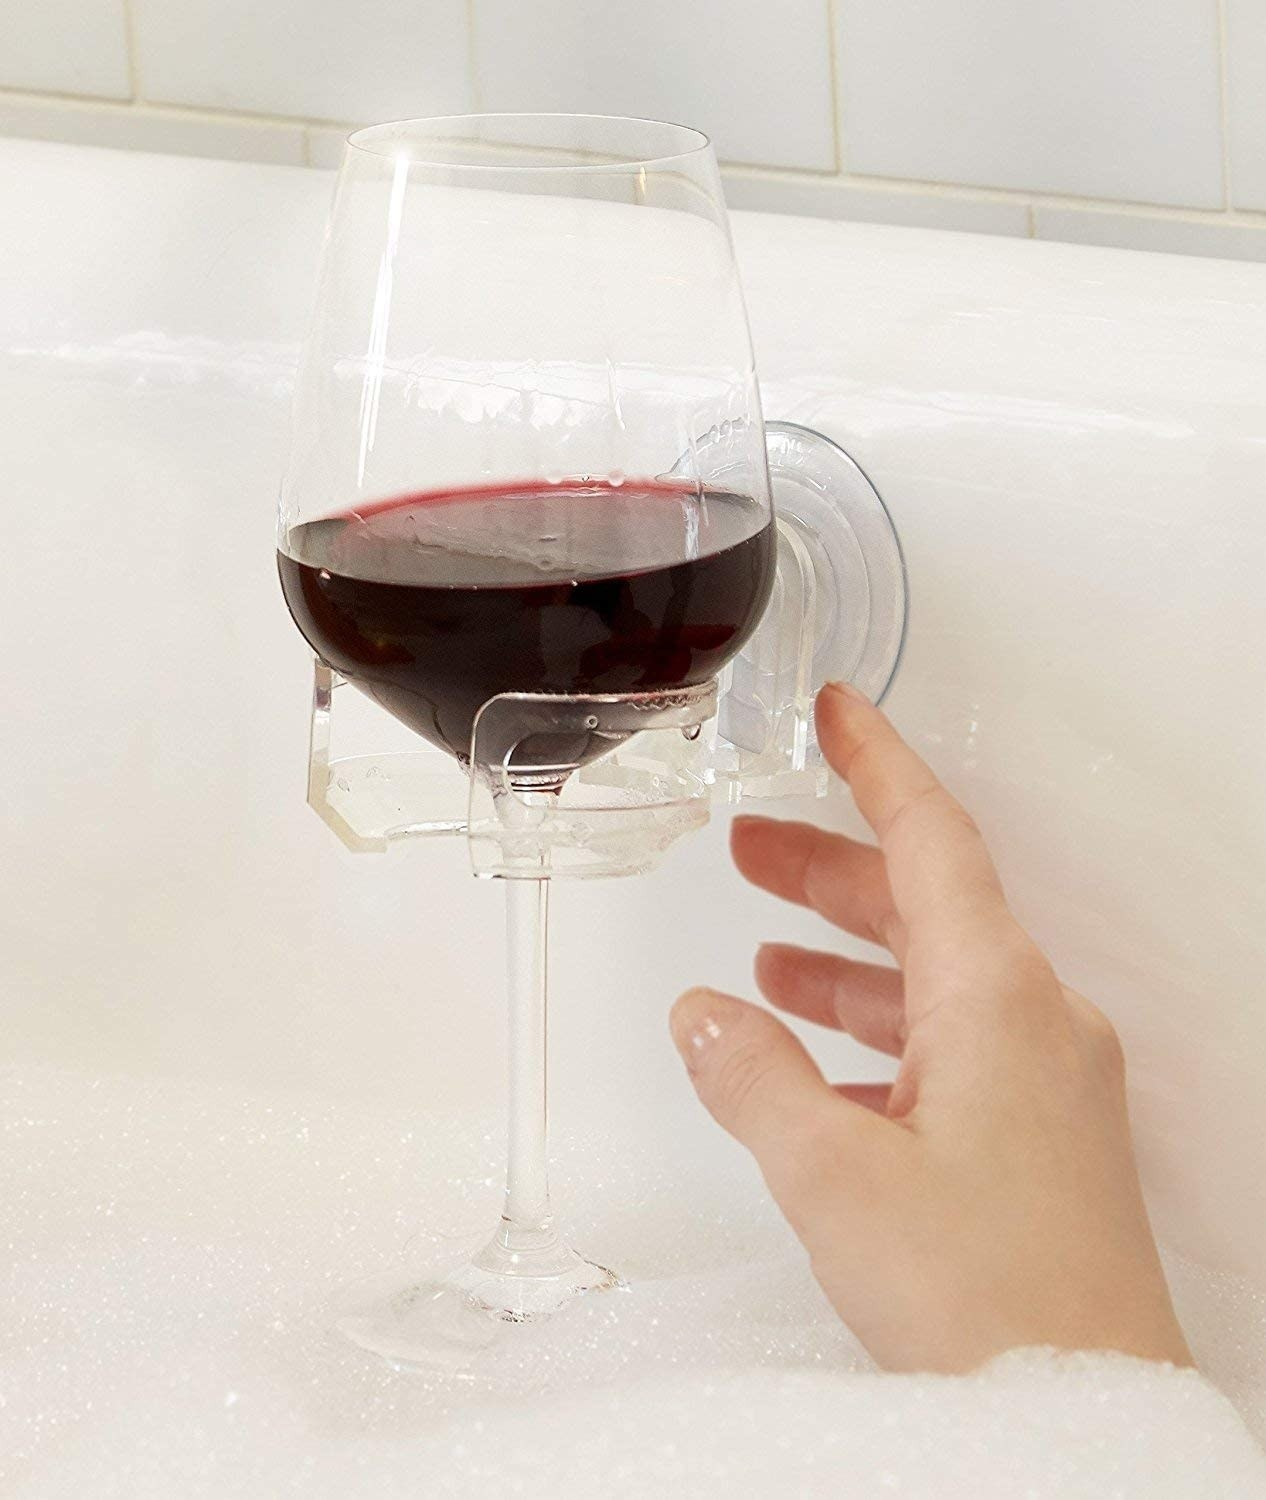 hand reaching out from bath for wine glass